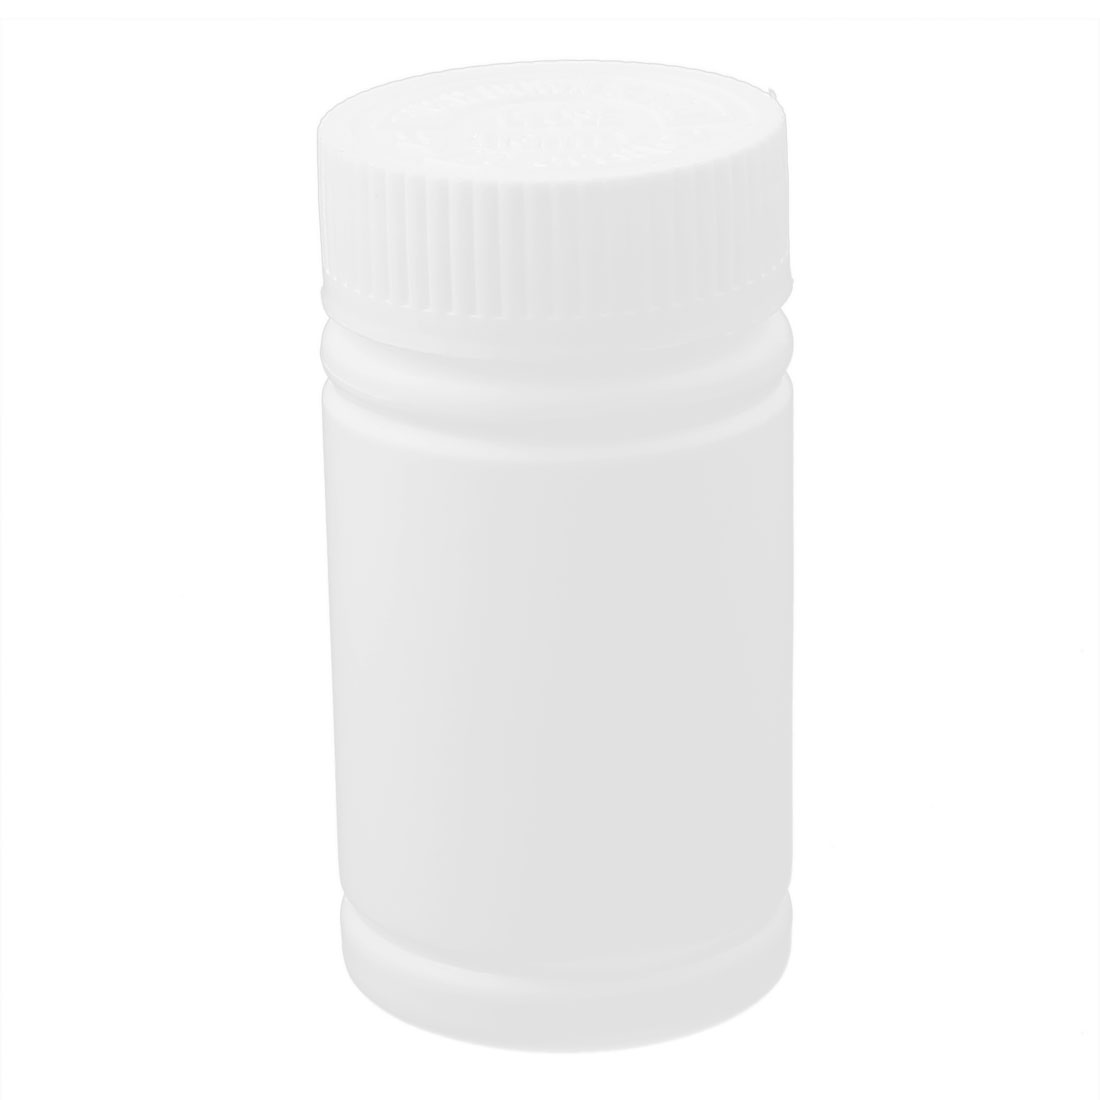 100mL Capacity 92mm x 46mm Cylinder Shape 36mm Dia Widemouth Cap Leak Proof Chemical Storage Case Bottle Container for Laboratory